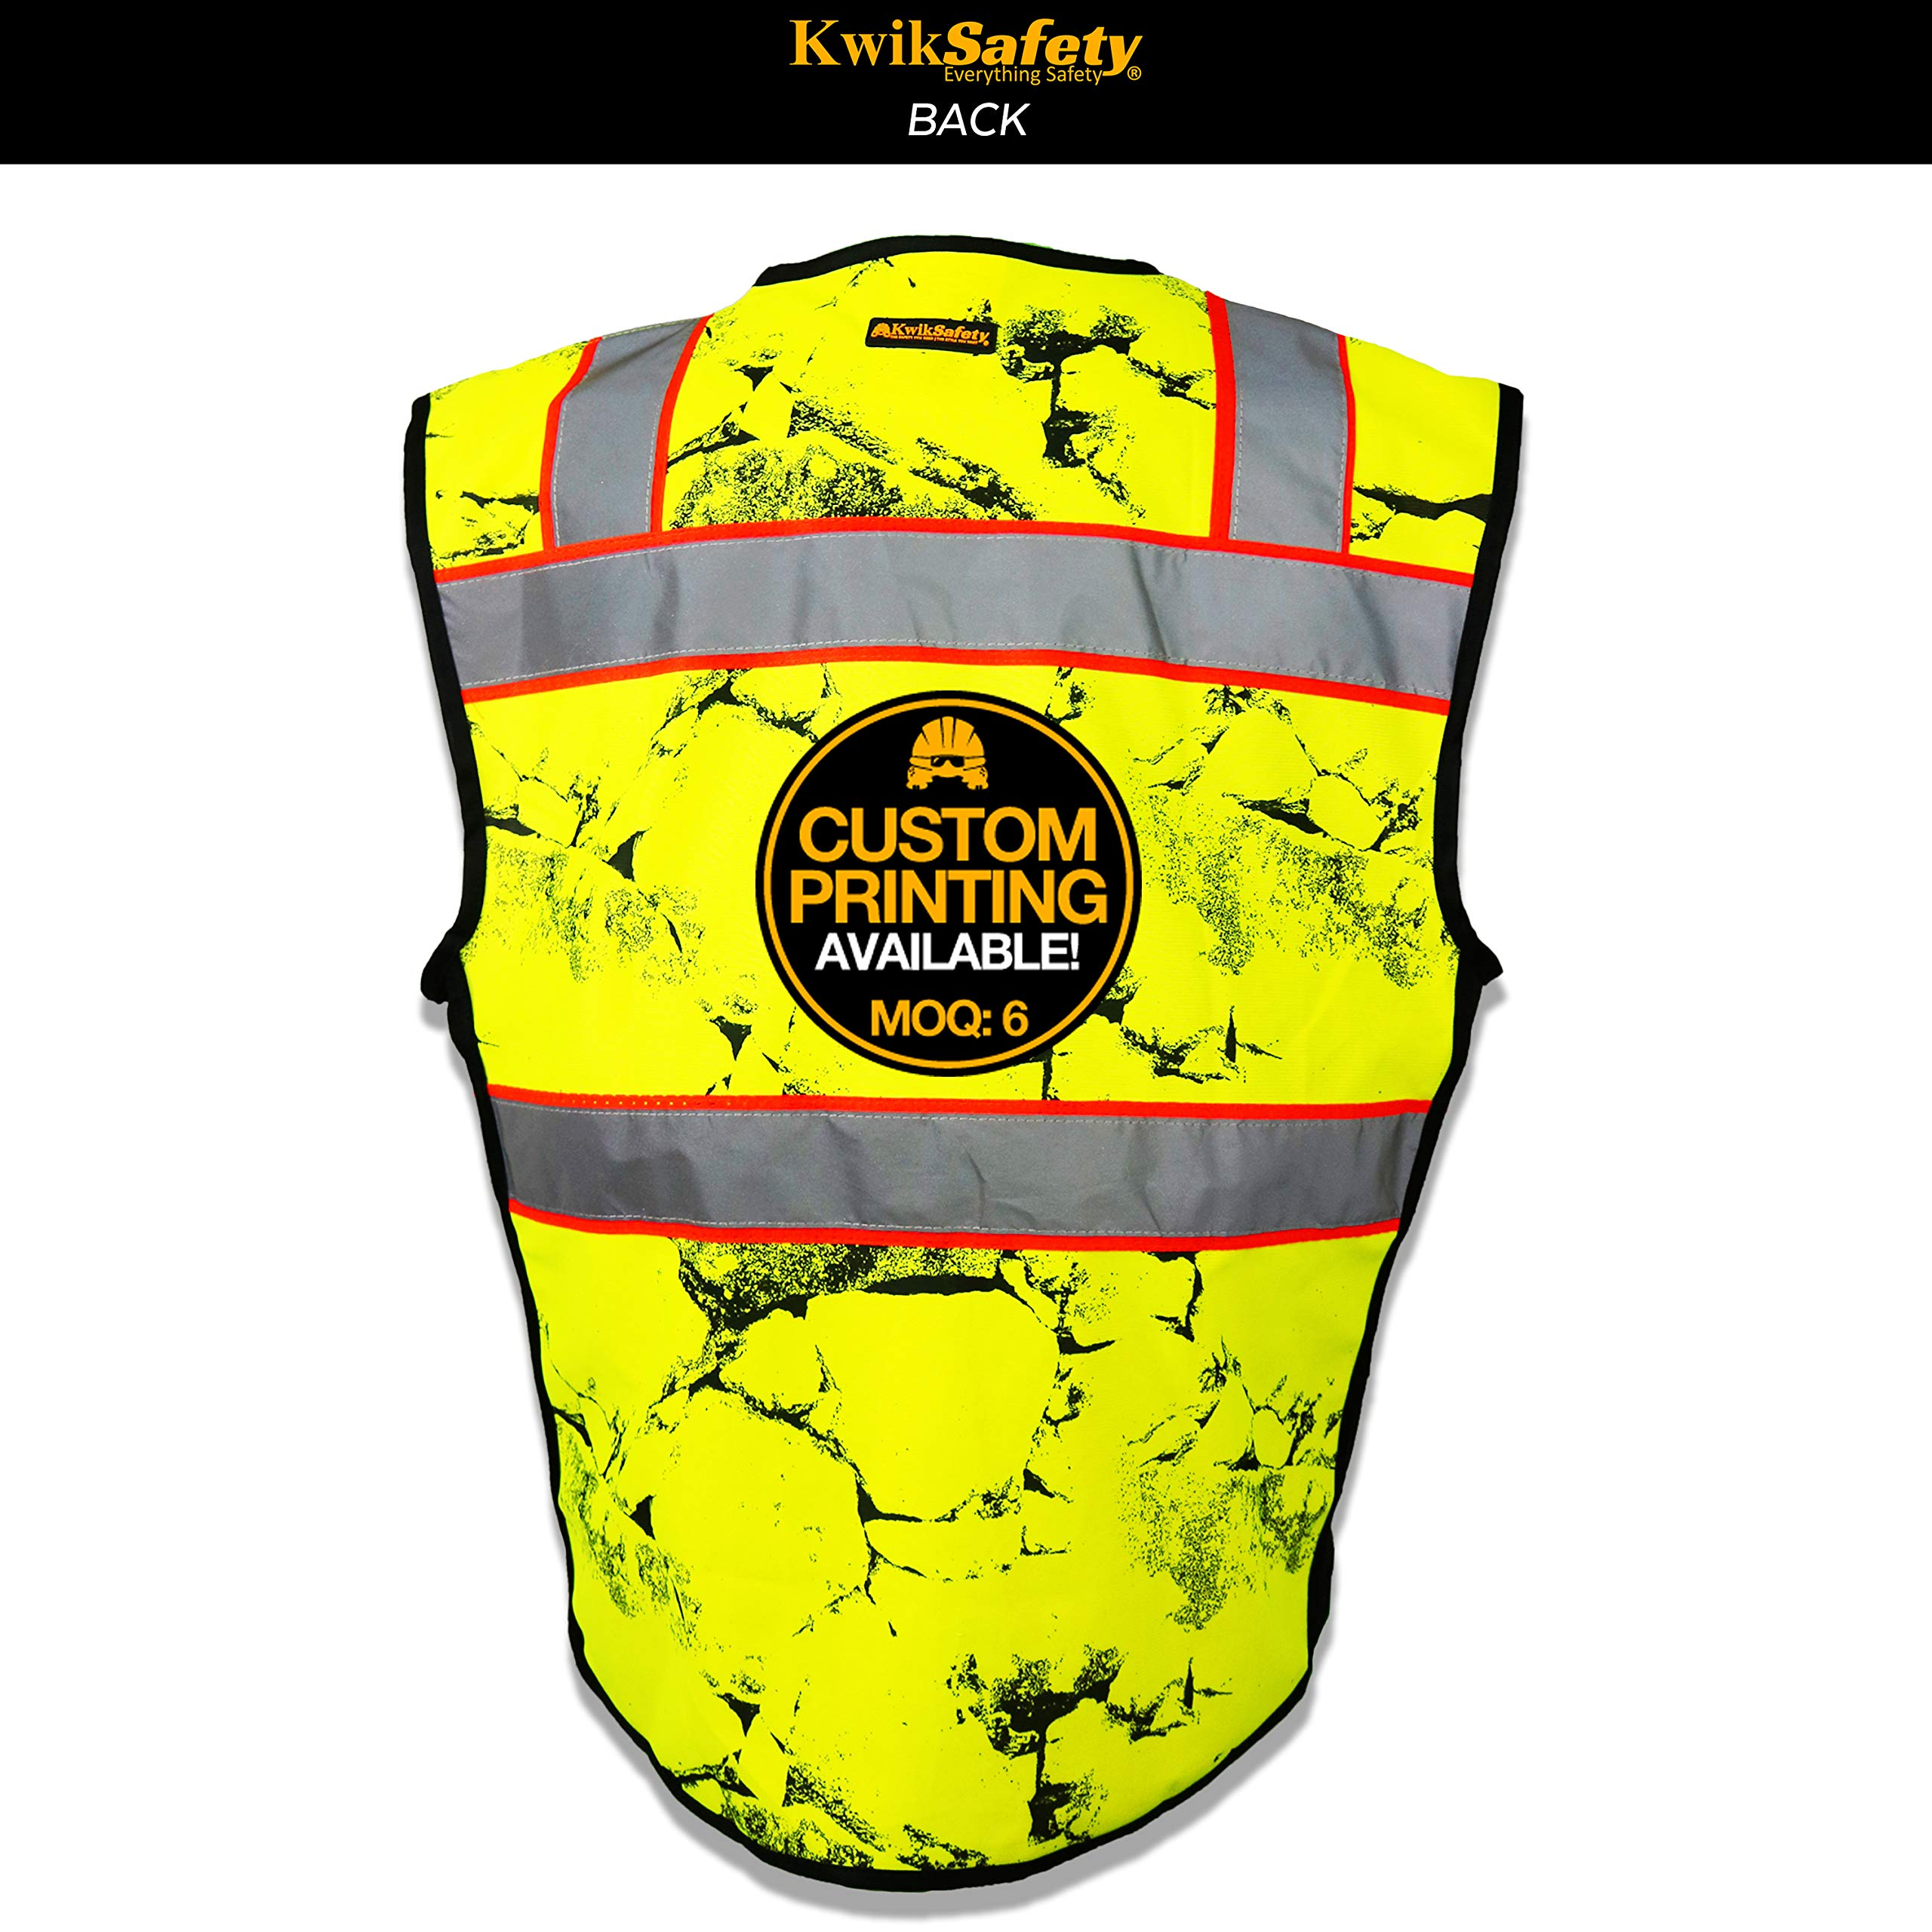 KwikSafety (Charlotte, NC) UNCLE WILLY'S WALL (10 Pockets) Class 2 ANSI High Visibility Reflective Safety Vest Heavy Duty Mesh with Zipper and HiVis for Construction Work HiViz Men Yellow Black L/XL by KwikSafety (Image #2)